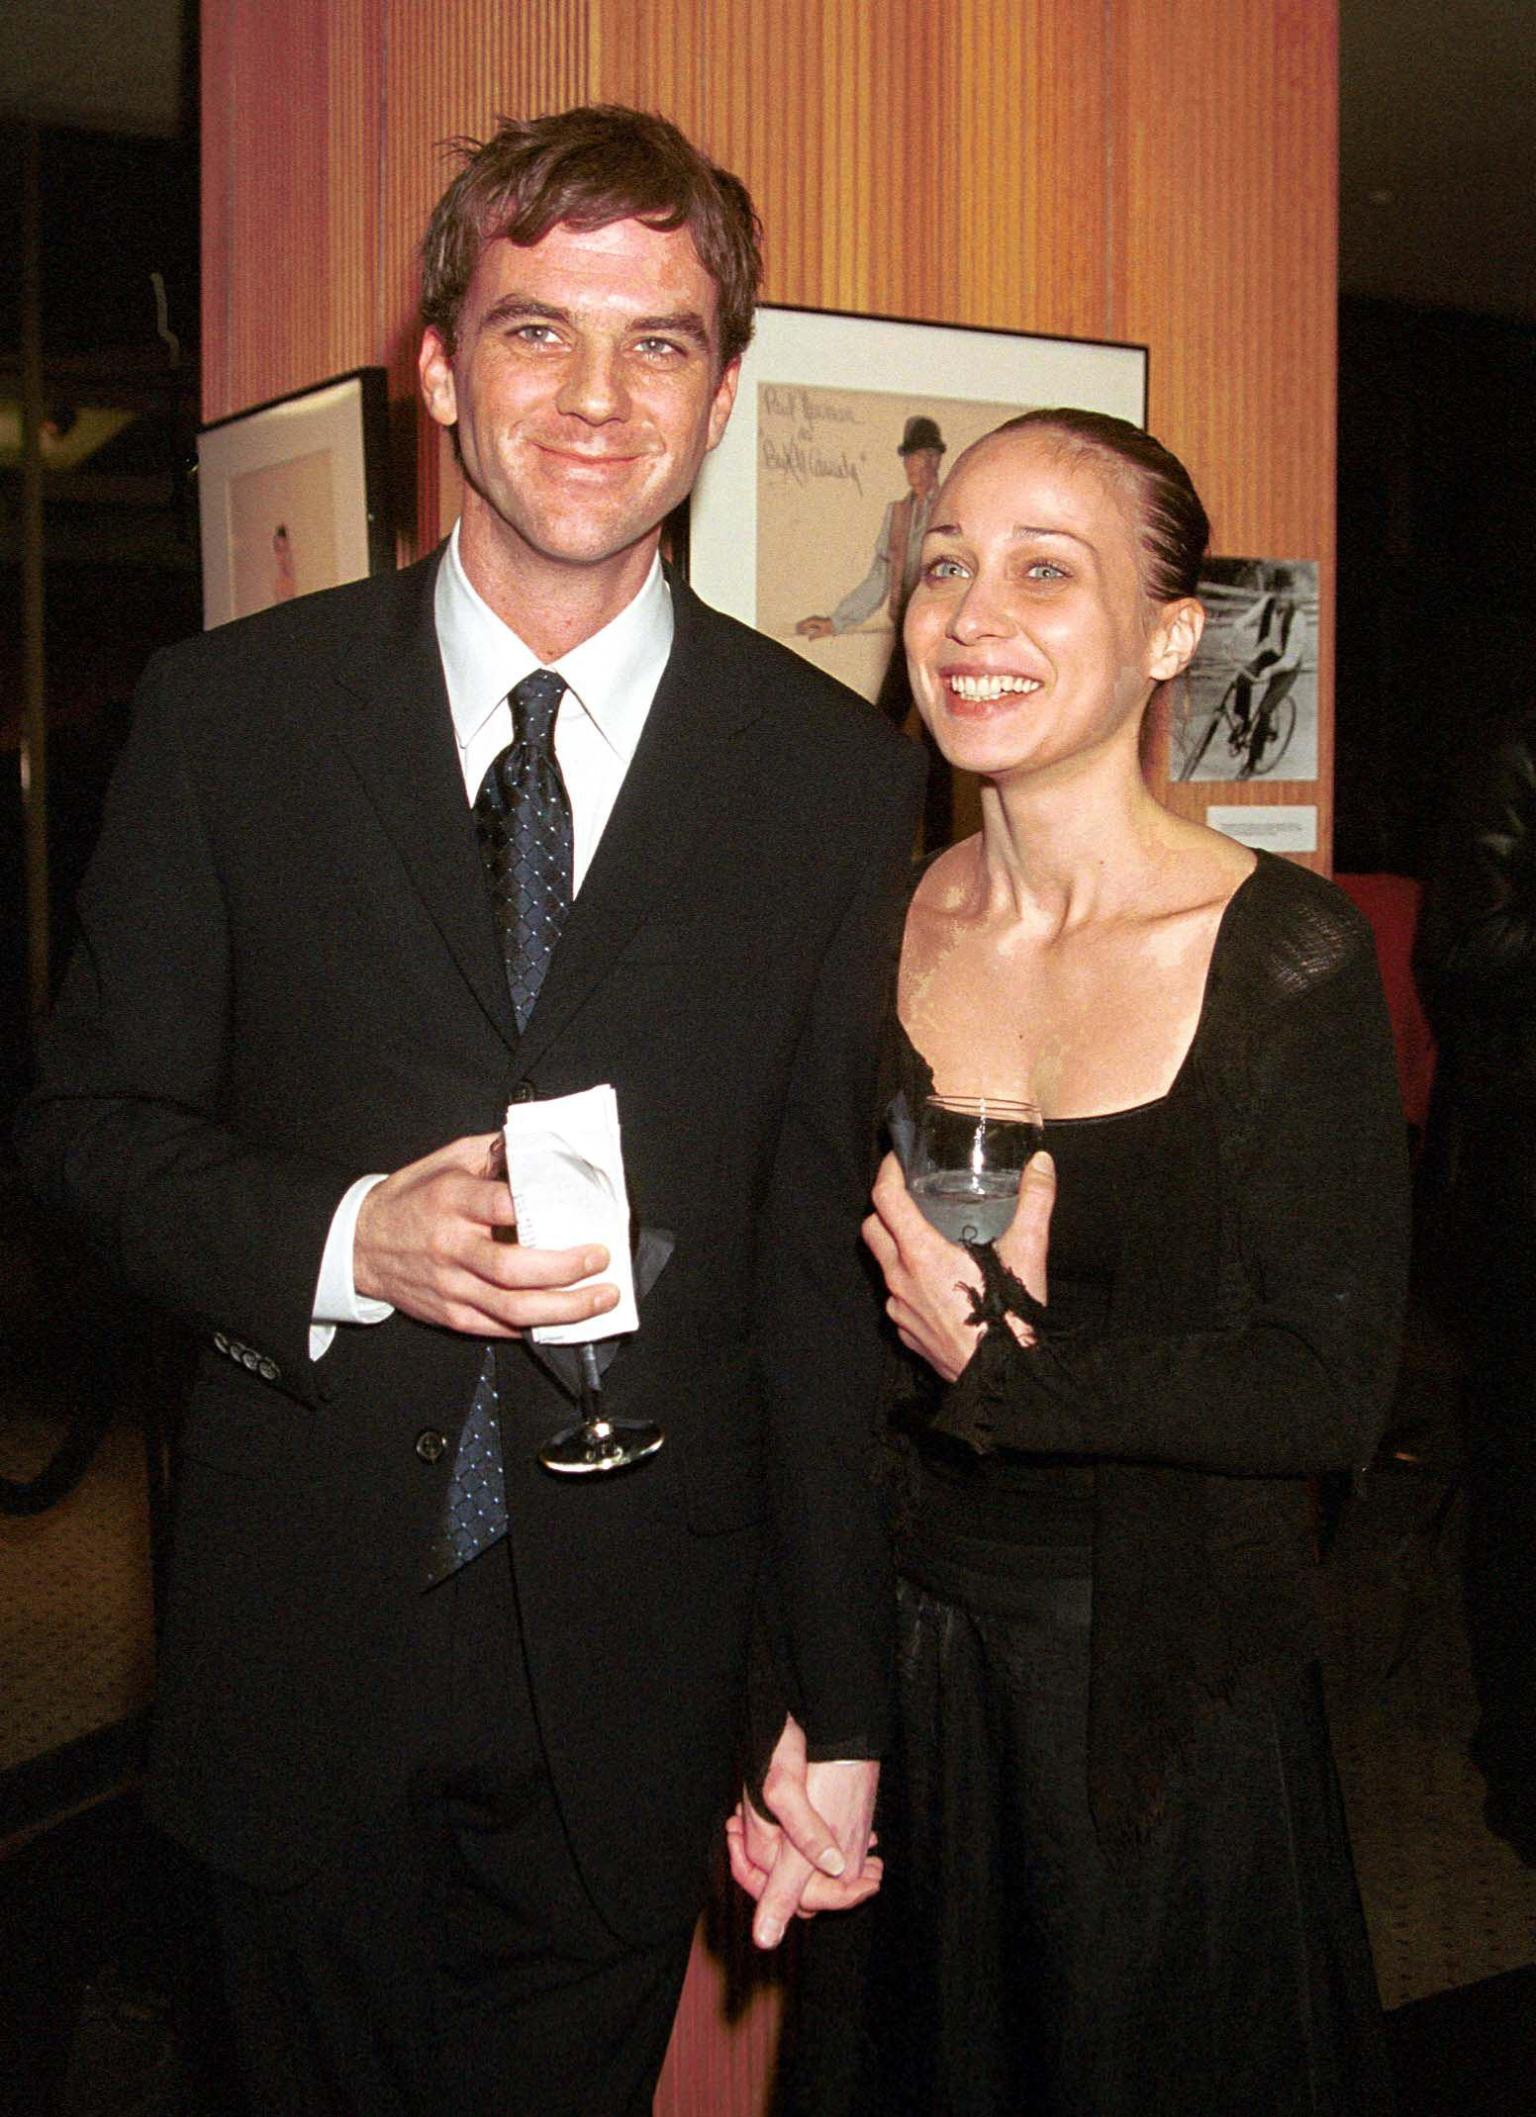 fiona apple s hot knife video finds singer collaborating ex fiona apple s hot knife video finds singer collaborating ex boyfriend paul thomas anderson again the huffington post